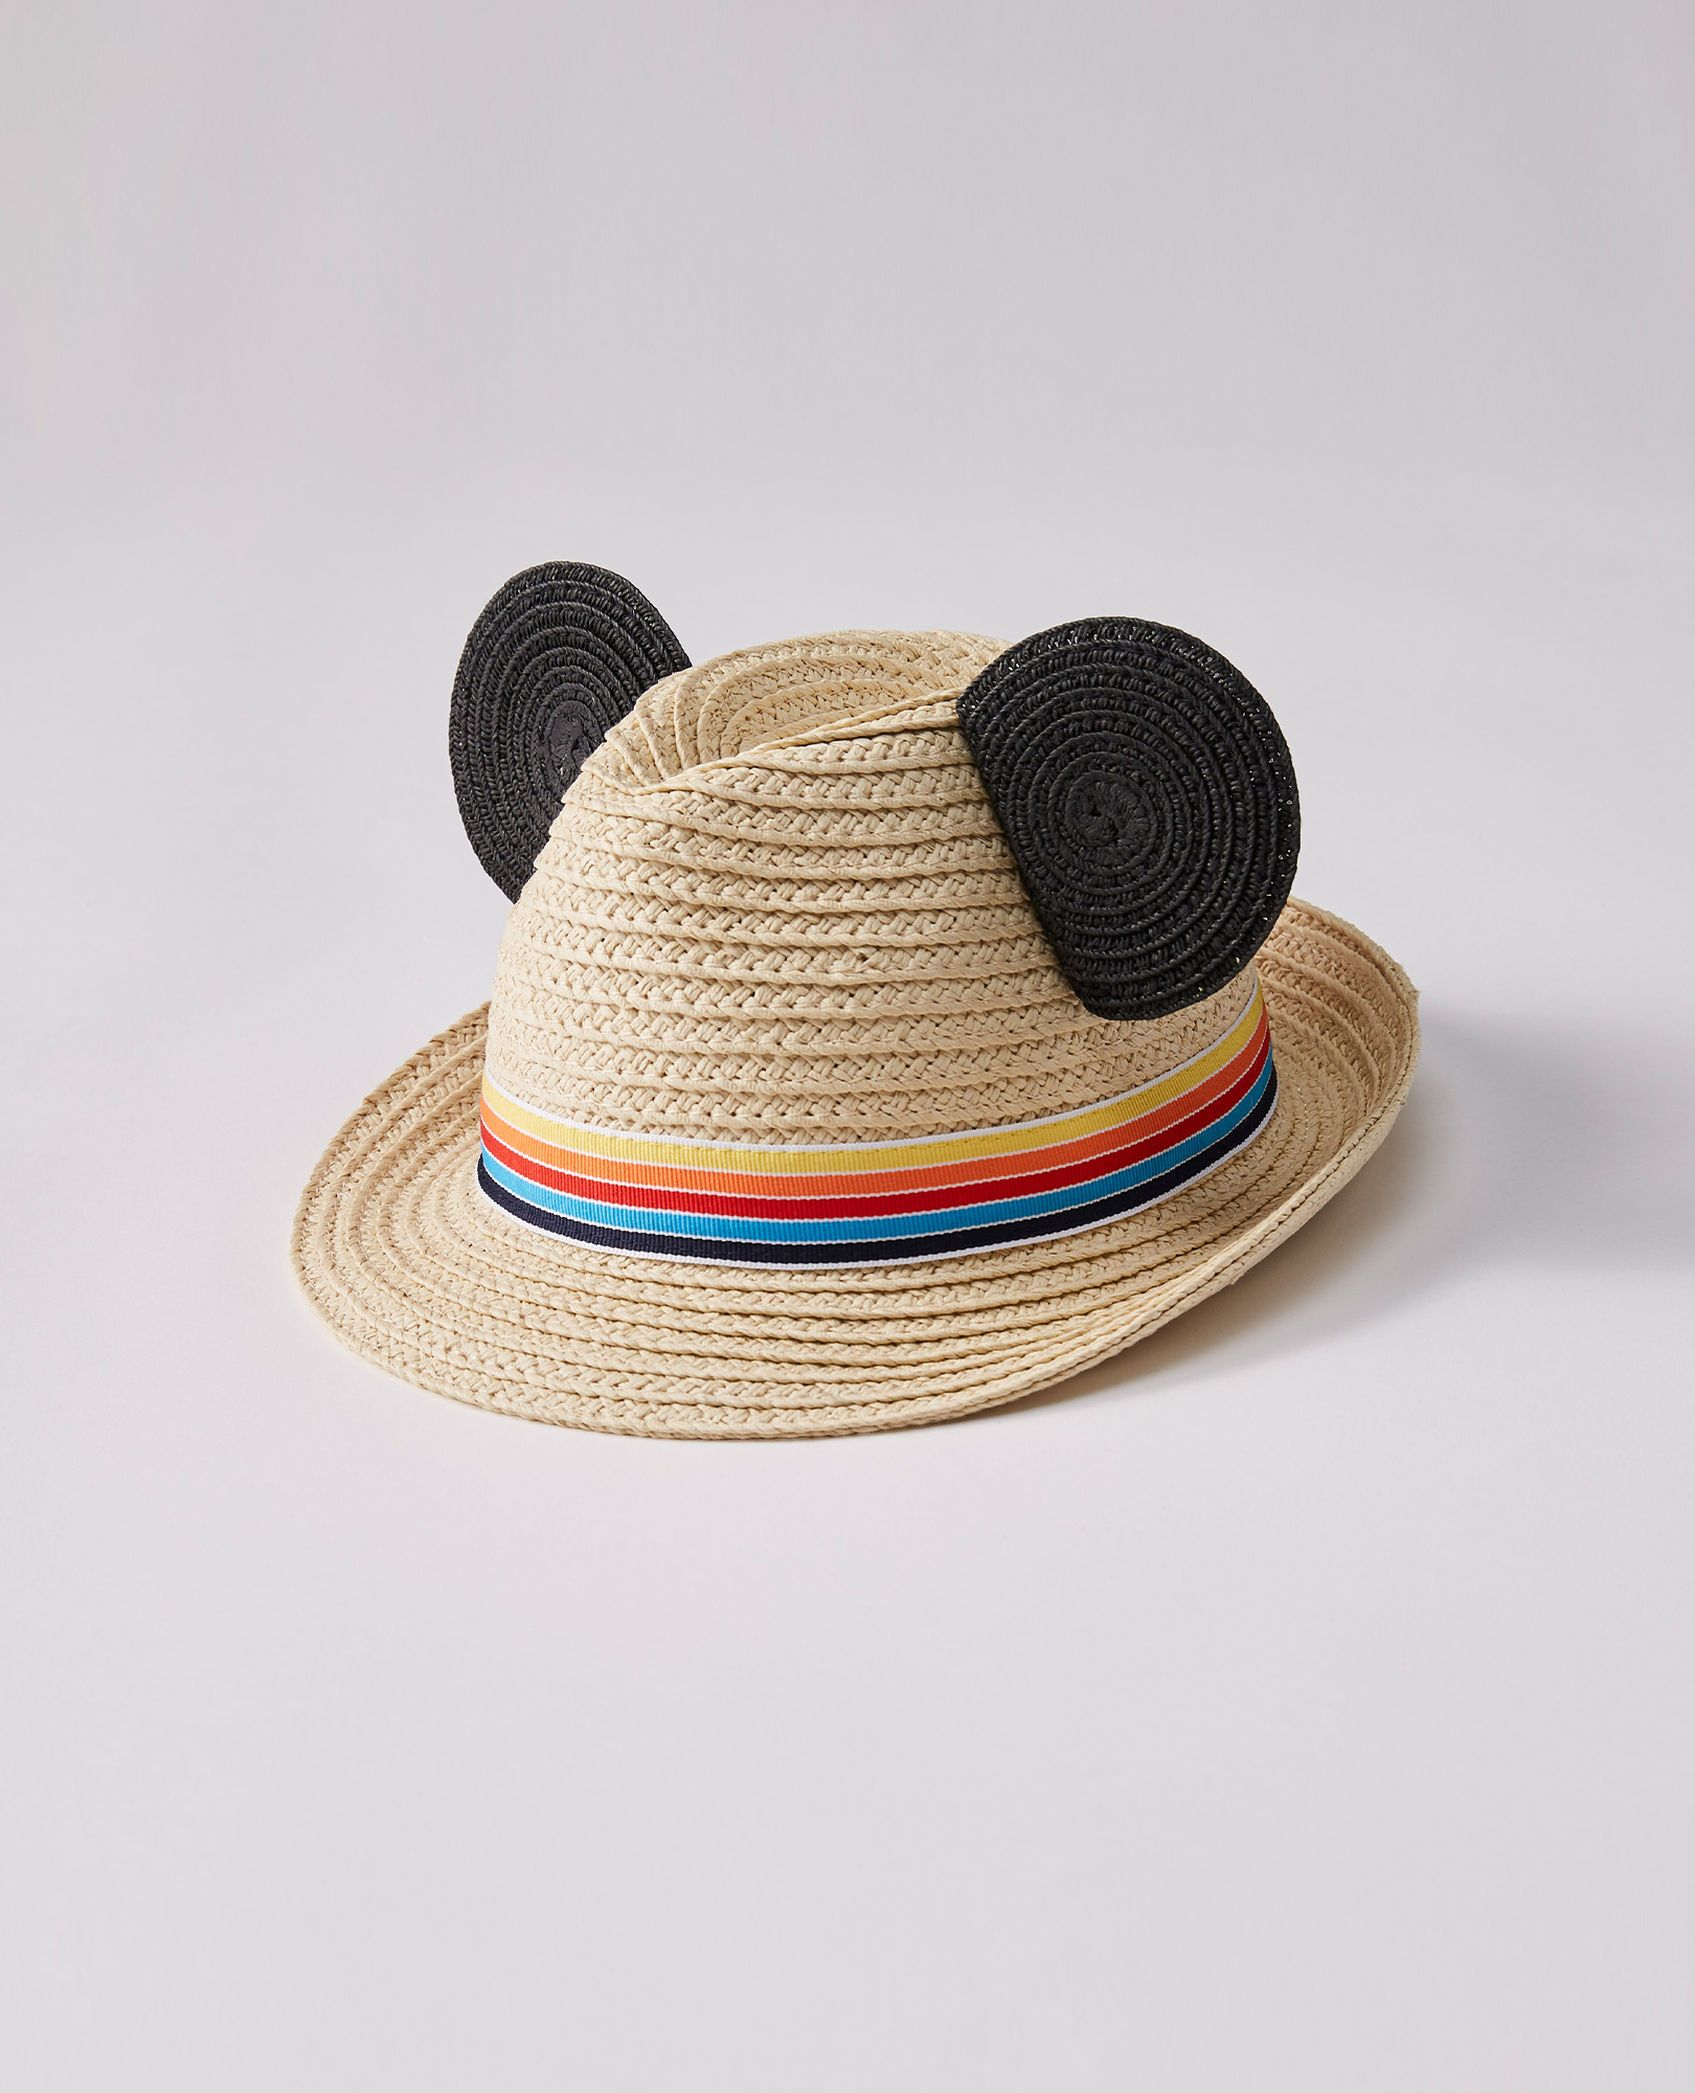 49493faca4462 Disney Mickey Mouse Straw Hat